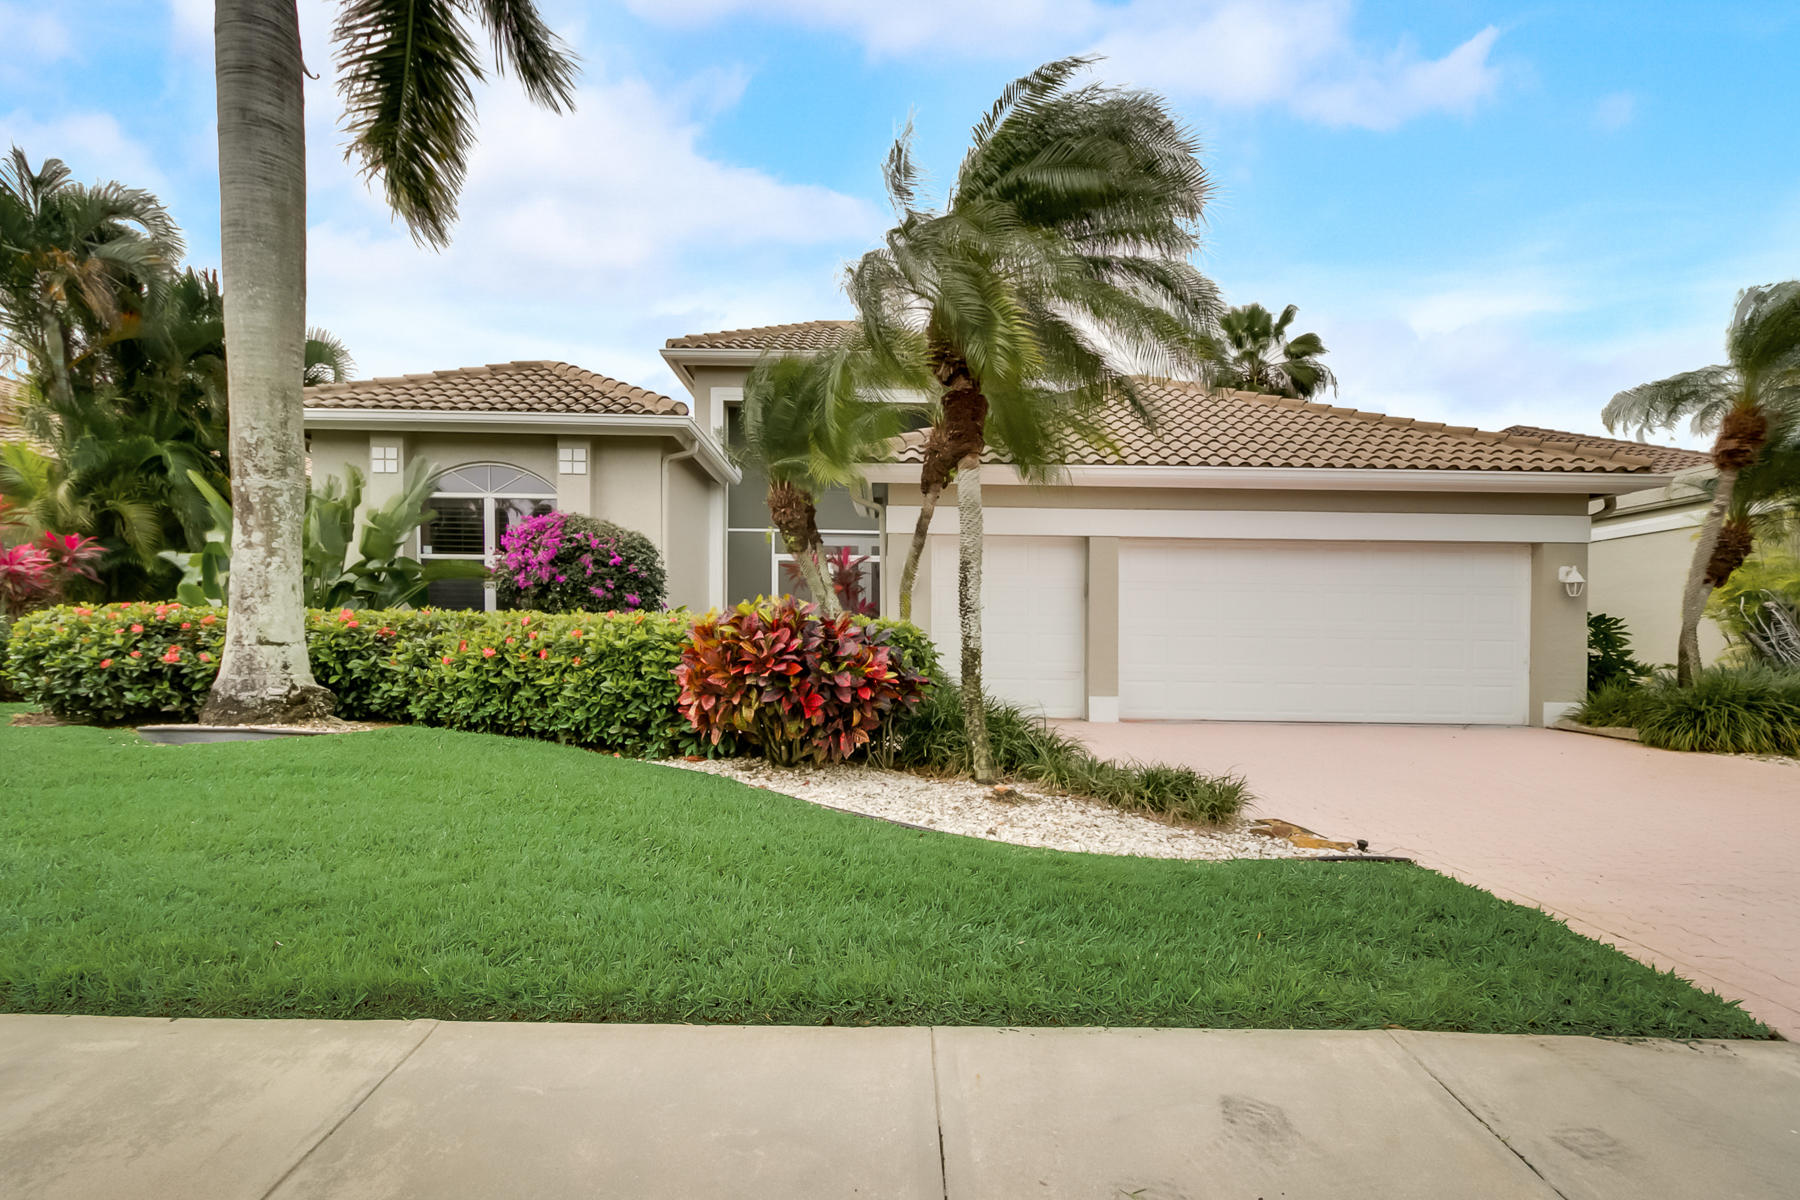 7315 Greenport Cove Boynton Beach 33437 - photo